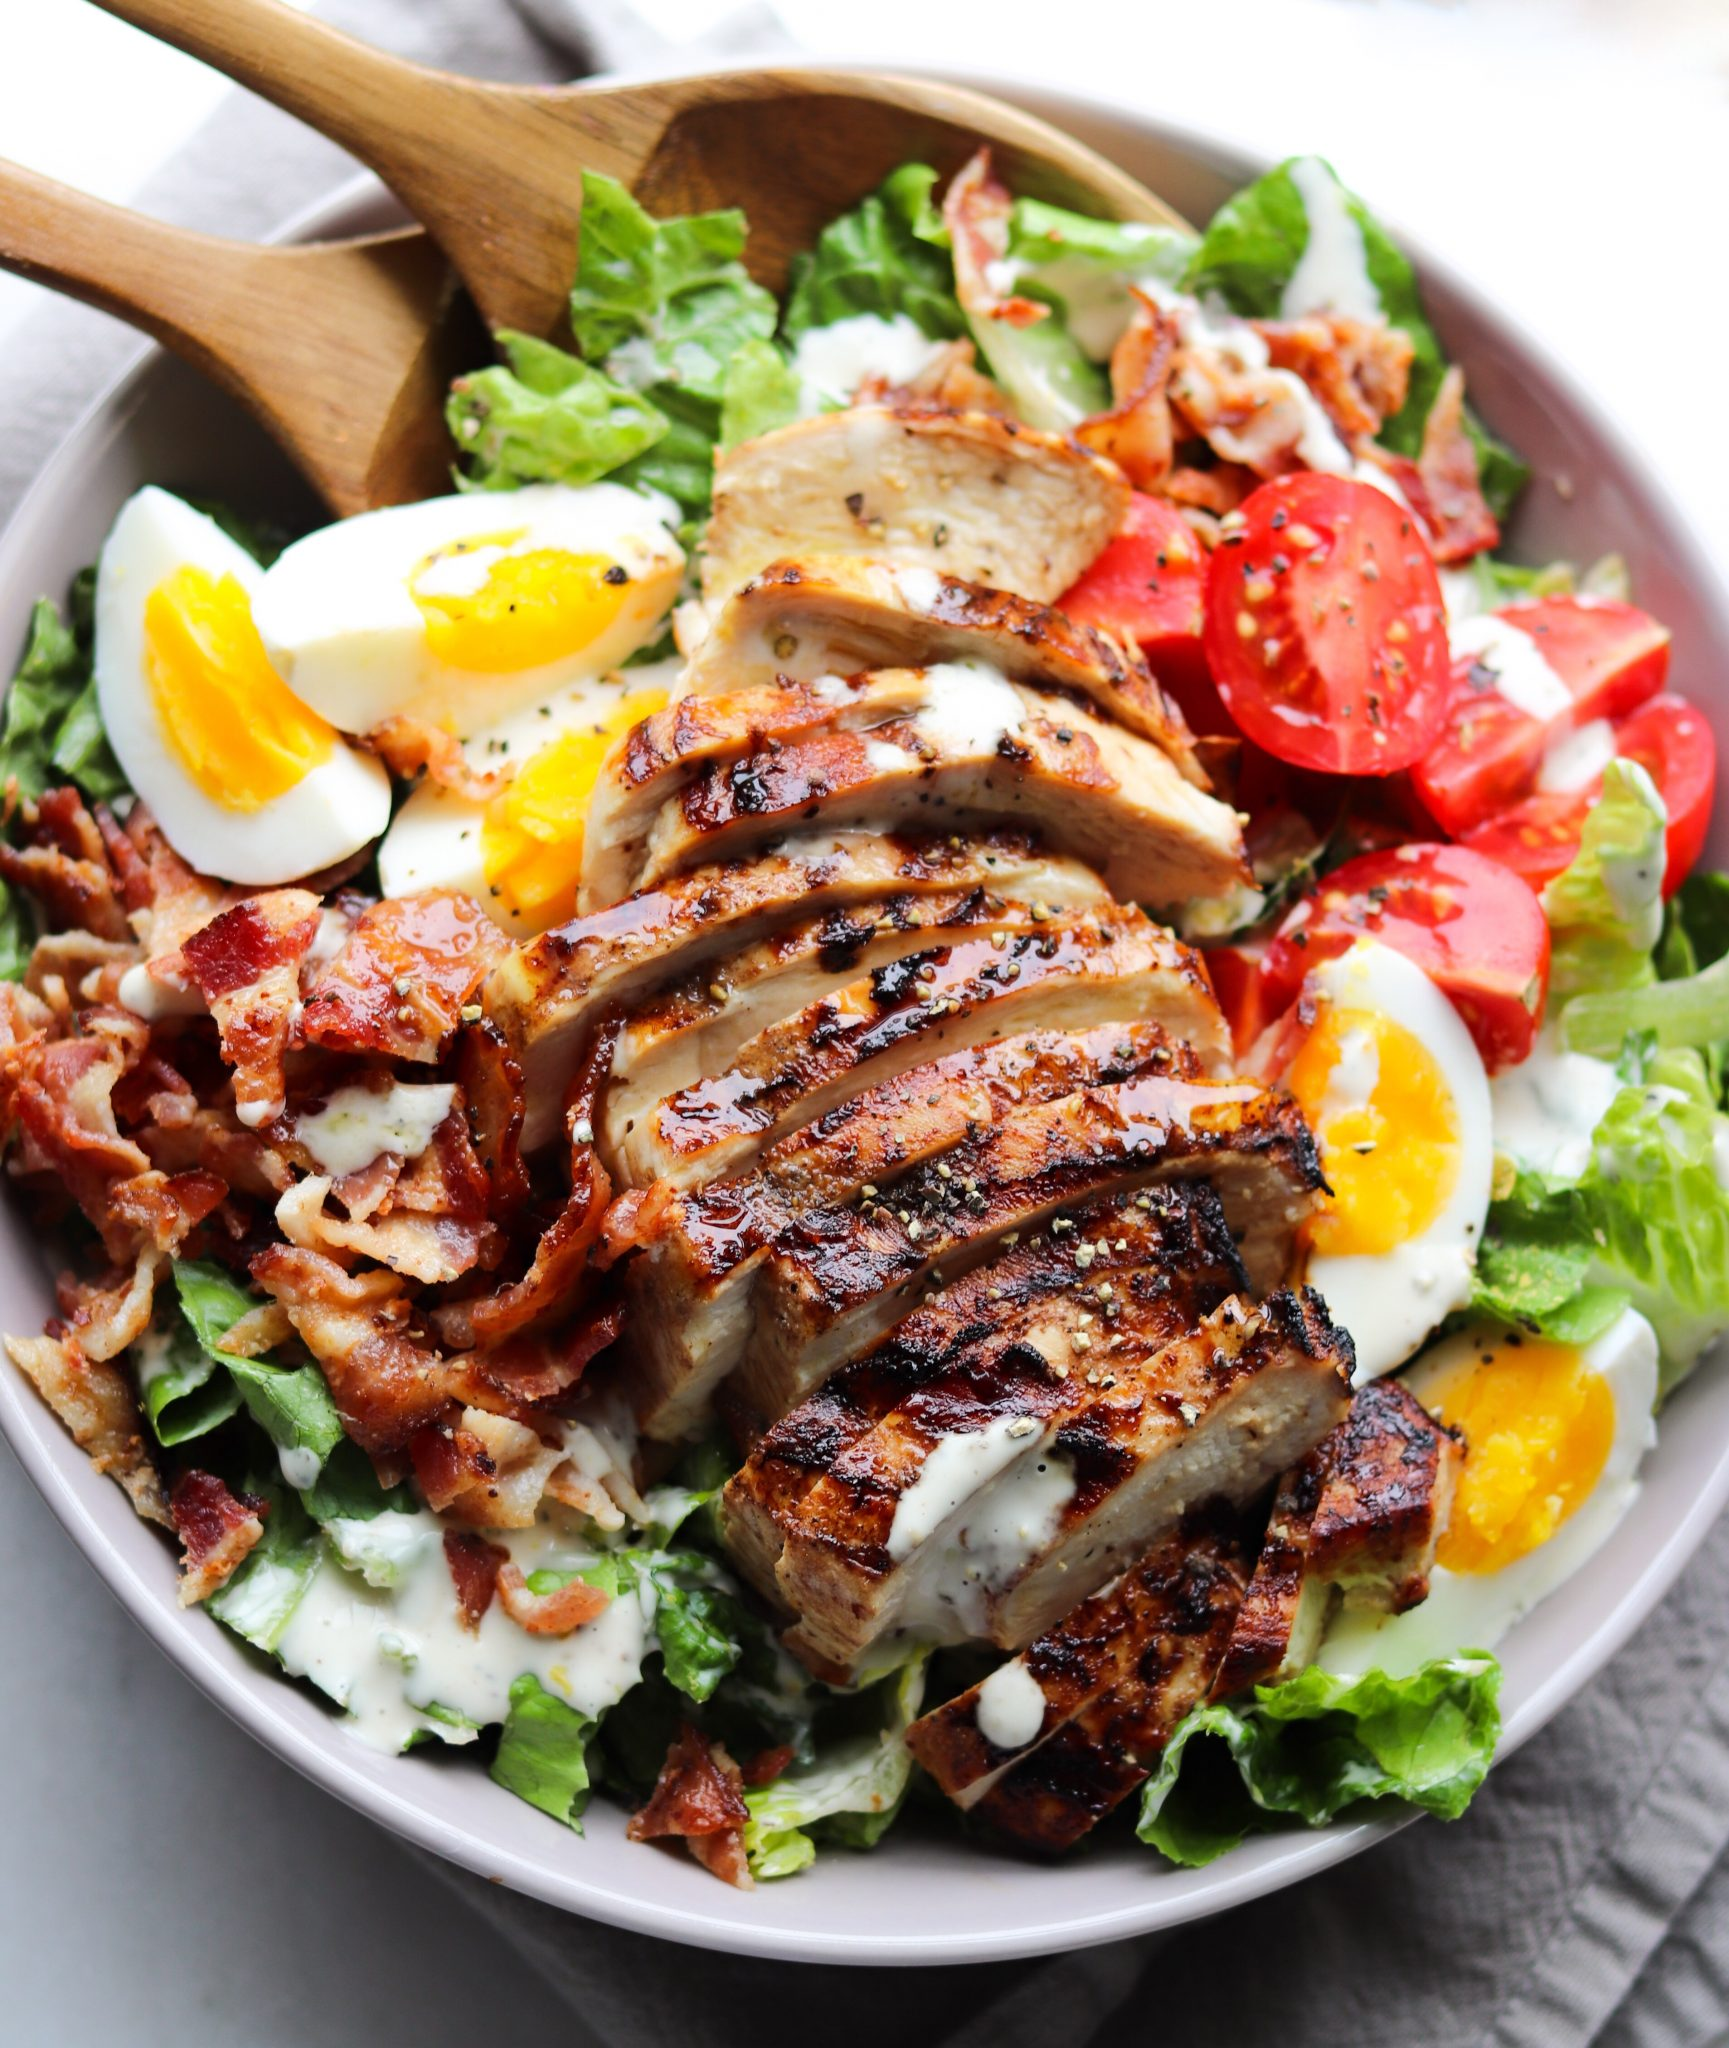 A large gray bowl is filled with chopped romaine lettuce, quartered hard boiled eggs, crispy crumbled bacon, and a sliced grilled chicken breast. The creamy caesar dressing is drizzled on top.